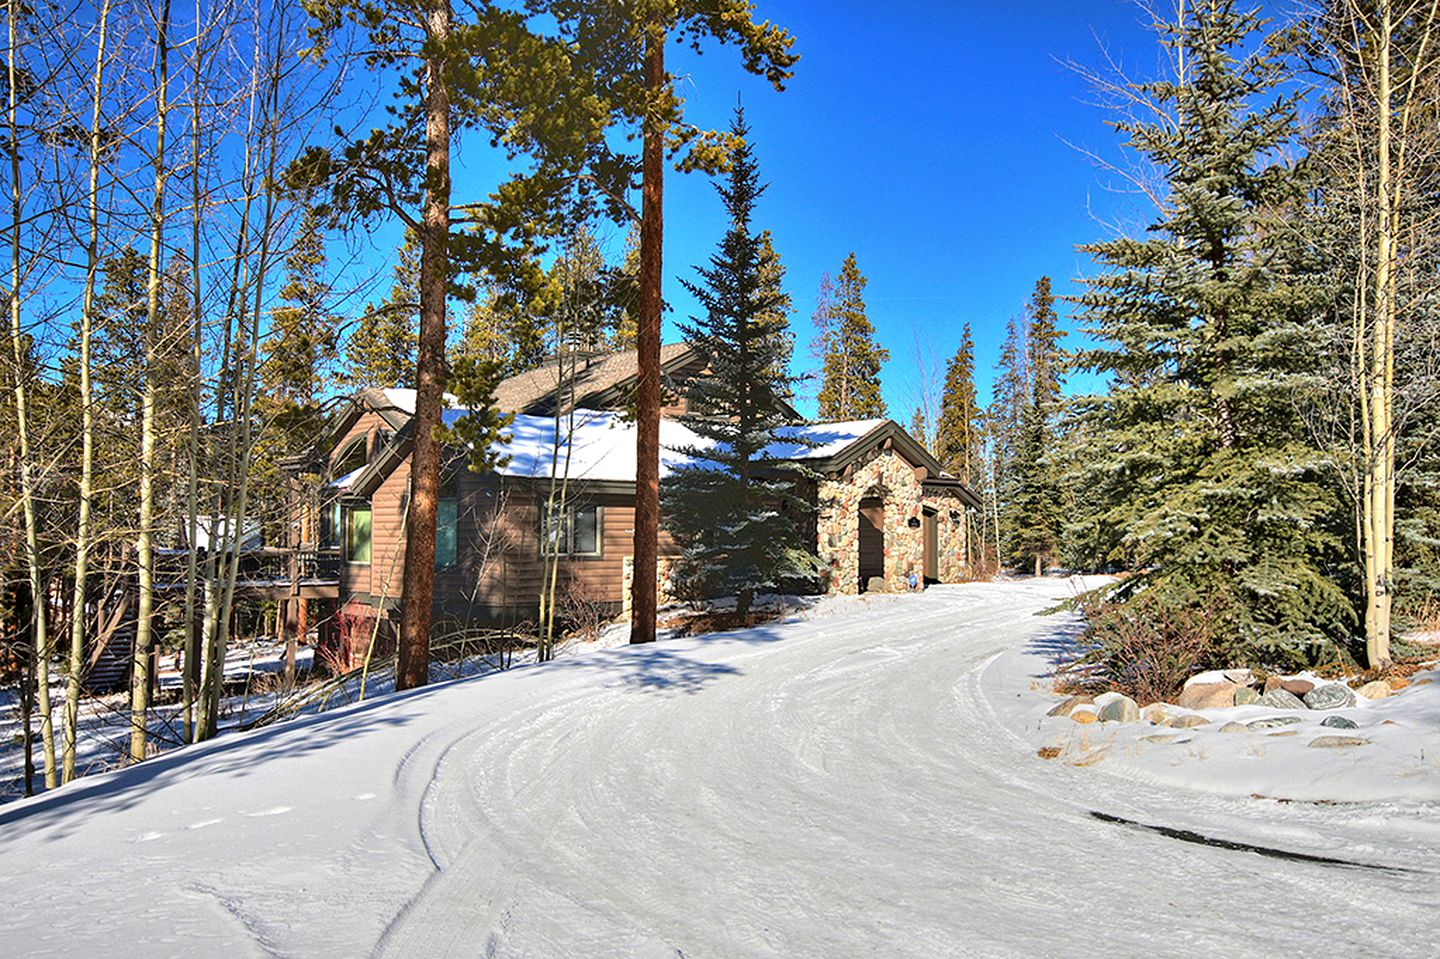 Cabins (Breckenridge, Colorado, United States)